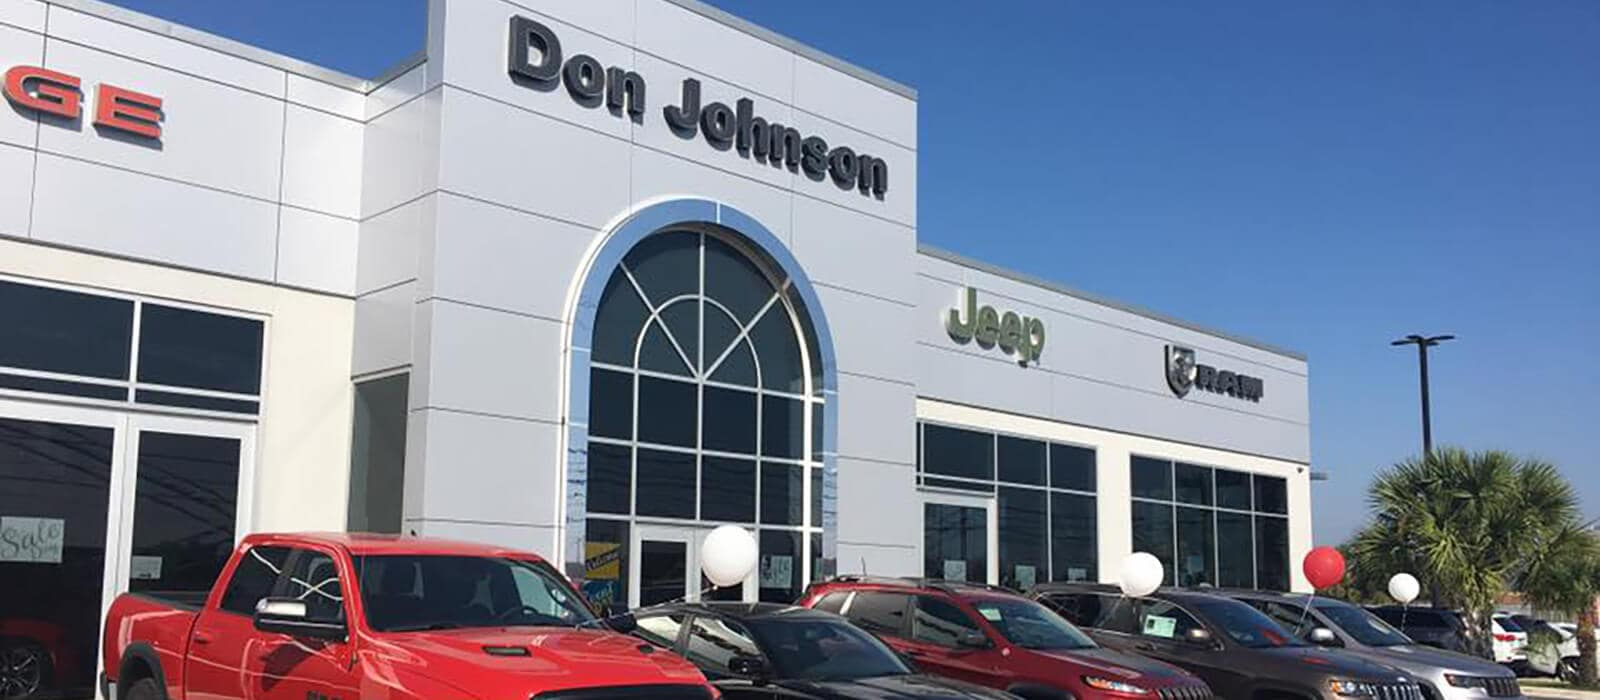 Don Johnson Dealership Exterior